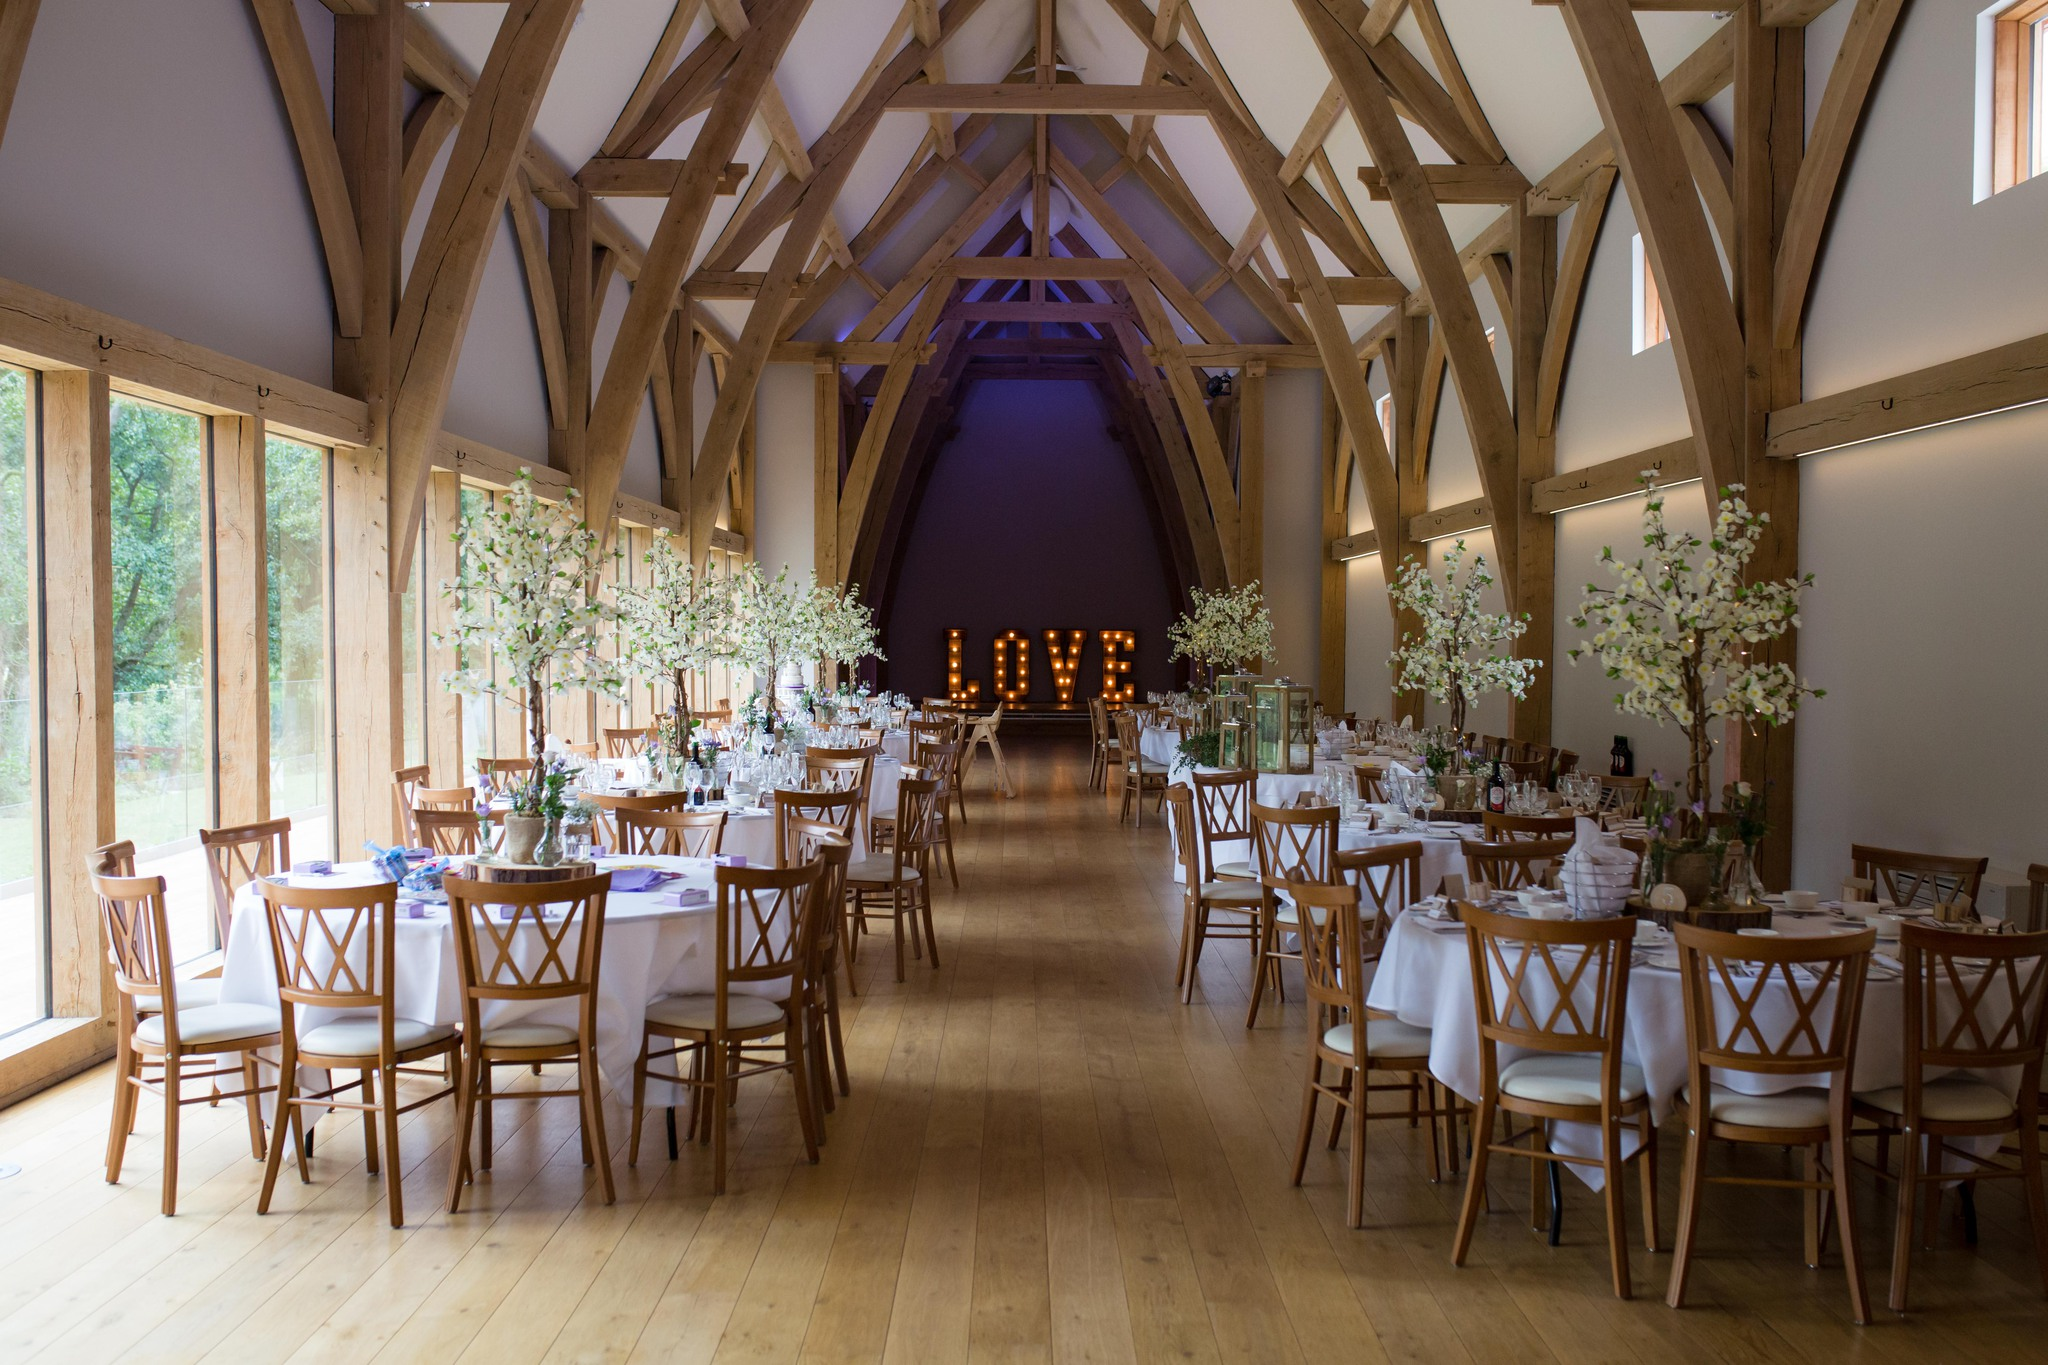 Mill Barns wedding venue interior dressed with blossom trees and light up love letters